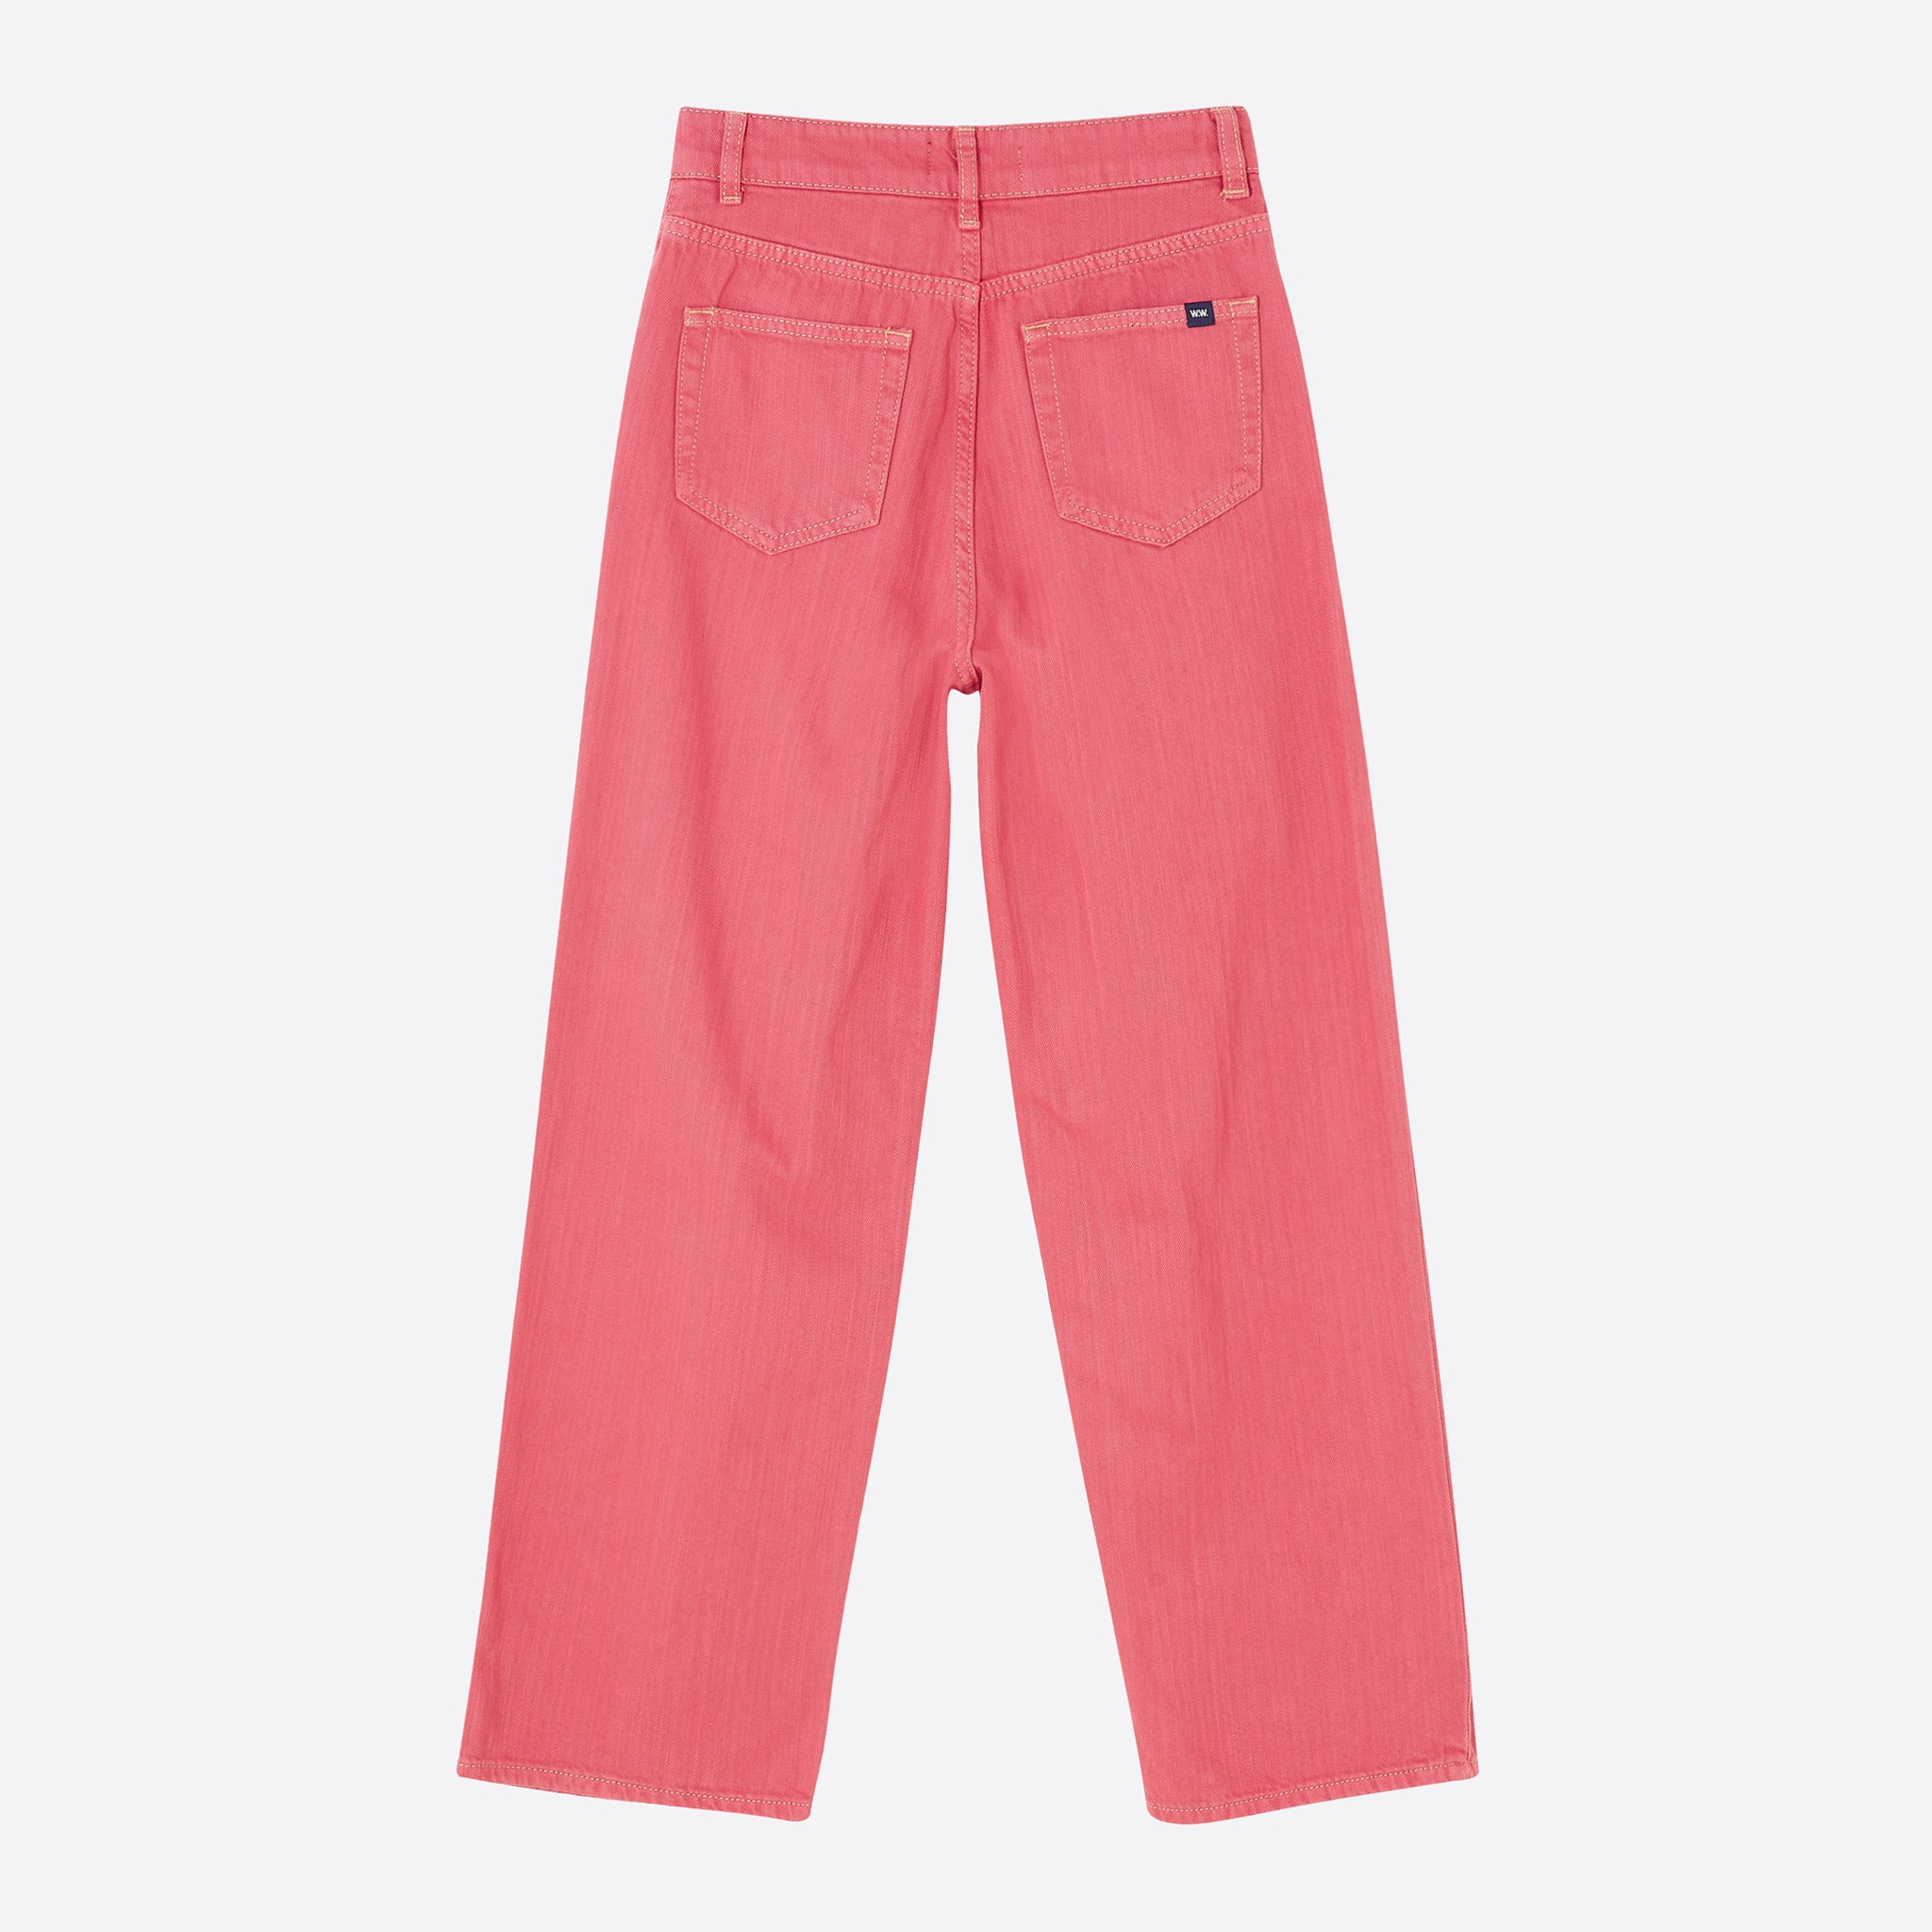 Wood Wood Ilo Jeans in Rose